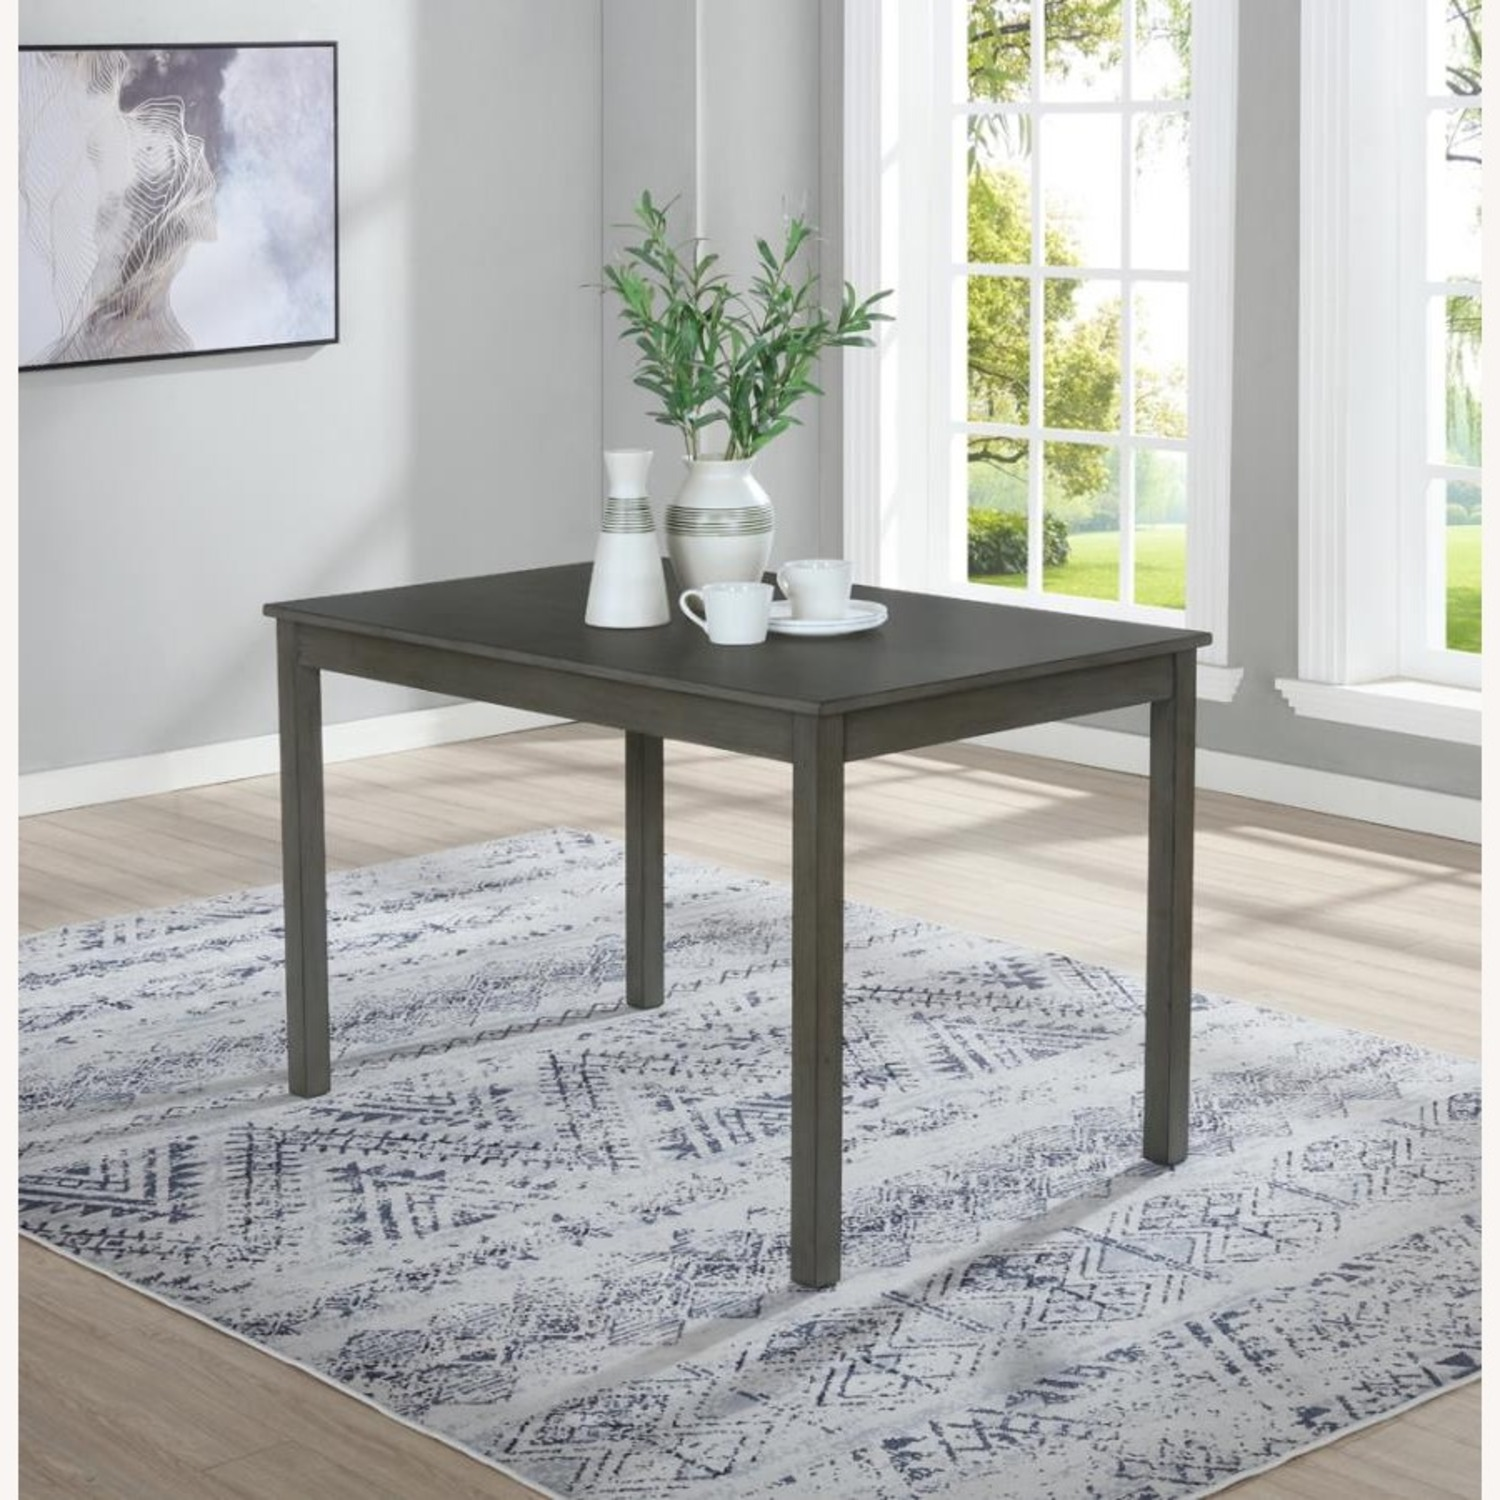 5-Piece Dining Set In Grey Wood & Fabric Finish - image-4